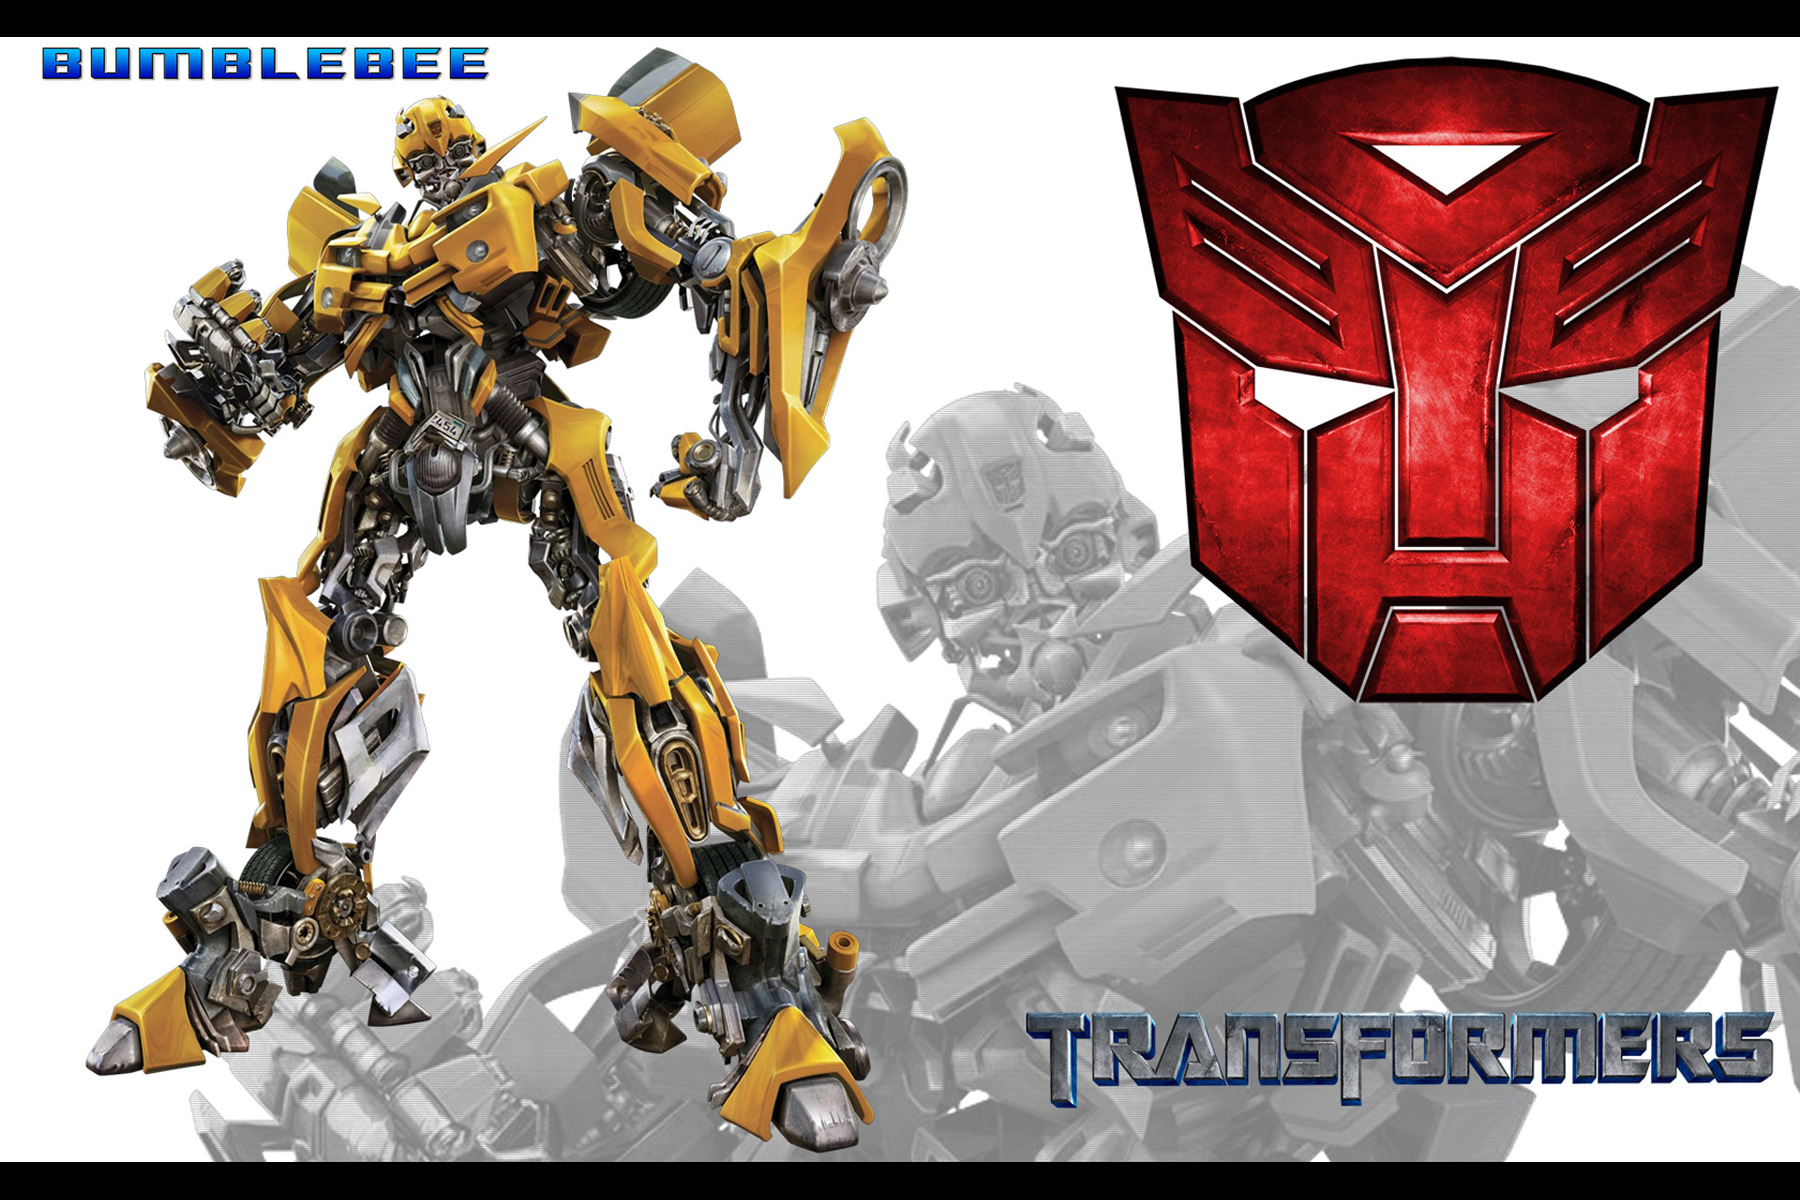 printable transformers movie trading cards  6 u2033 x 4 u2033 photo